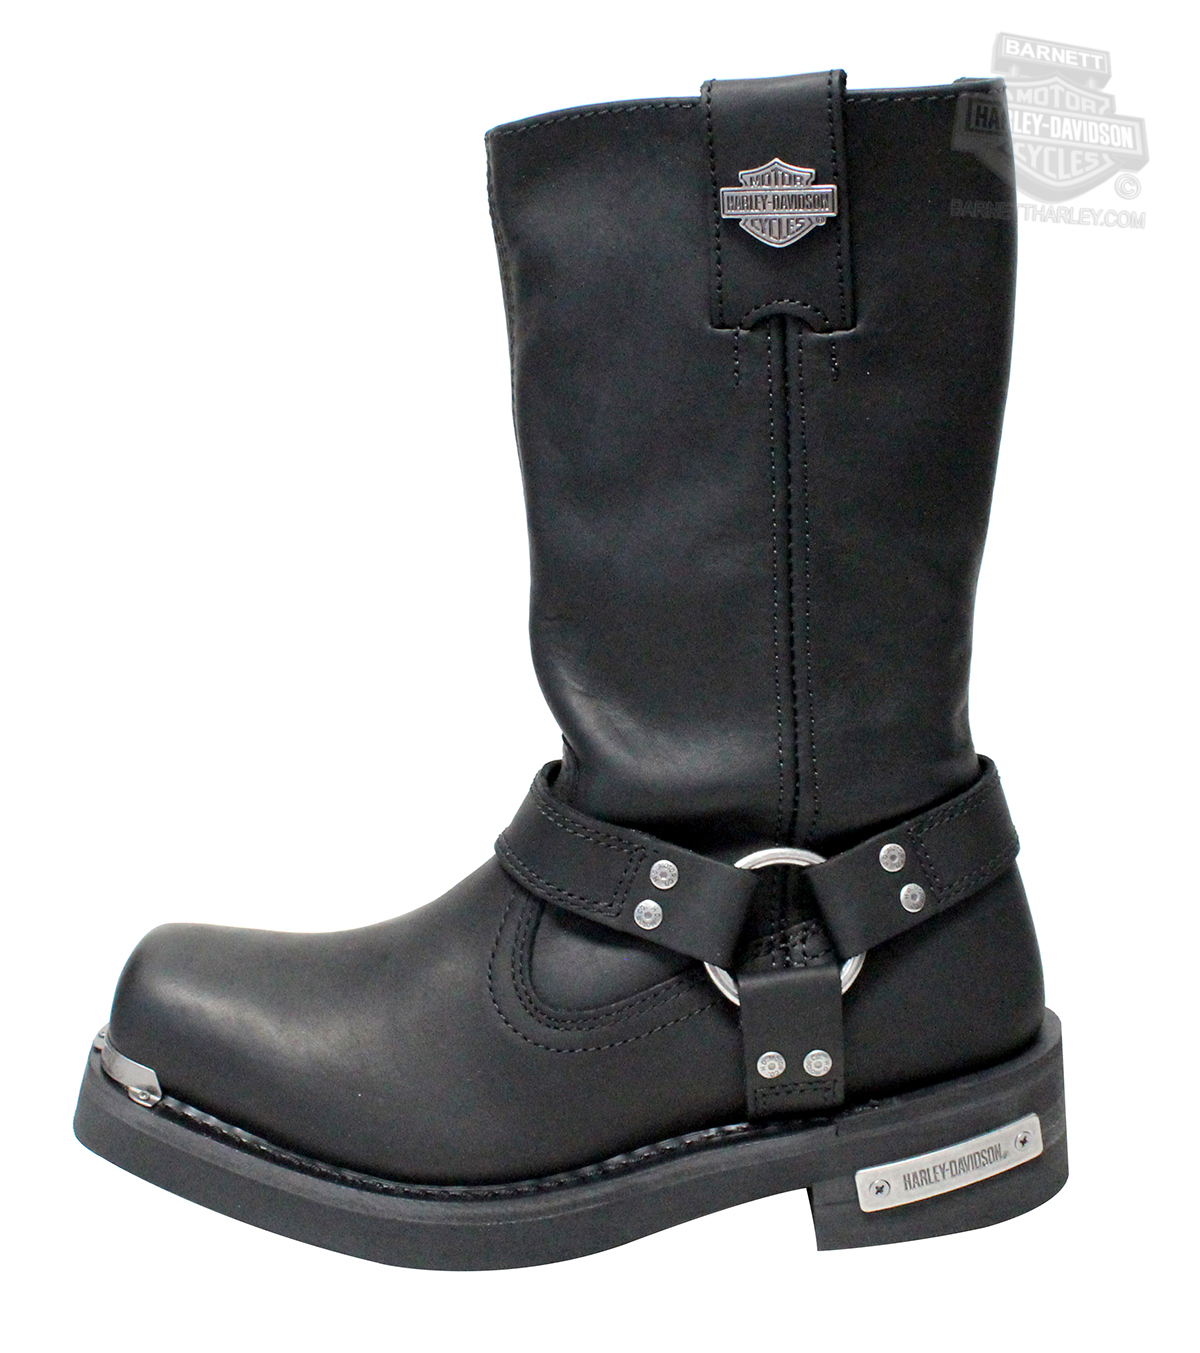 0466bcd11b5913 ... Harley-Davidson® Mens Landon Black Leather High Cut Boot - H-D® Dealer  Exclusive. Tap to expand